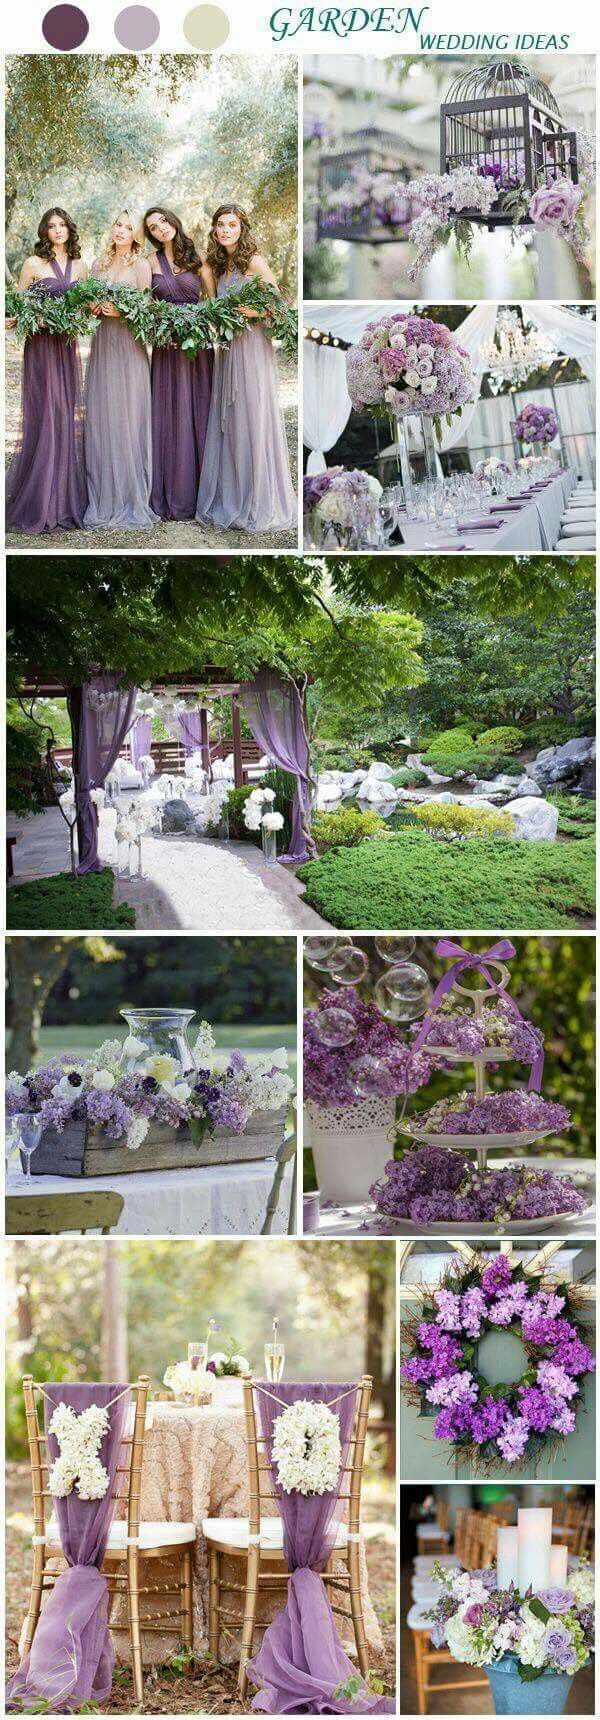 Wedding reception wedding decorations 2018 november 2018 I love the table settings in these pictures Want to recreate this